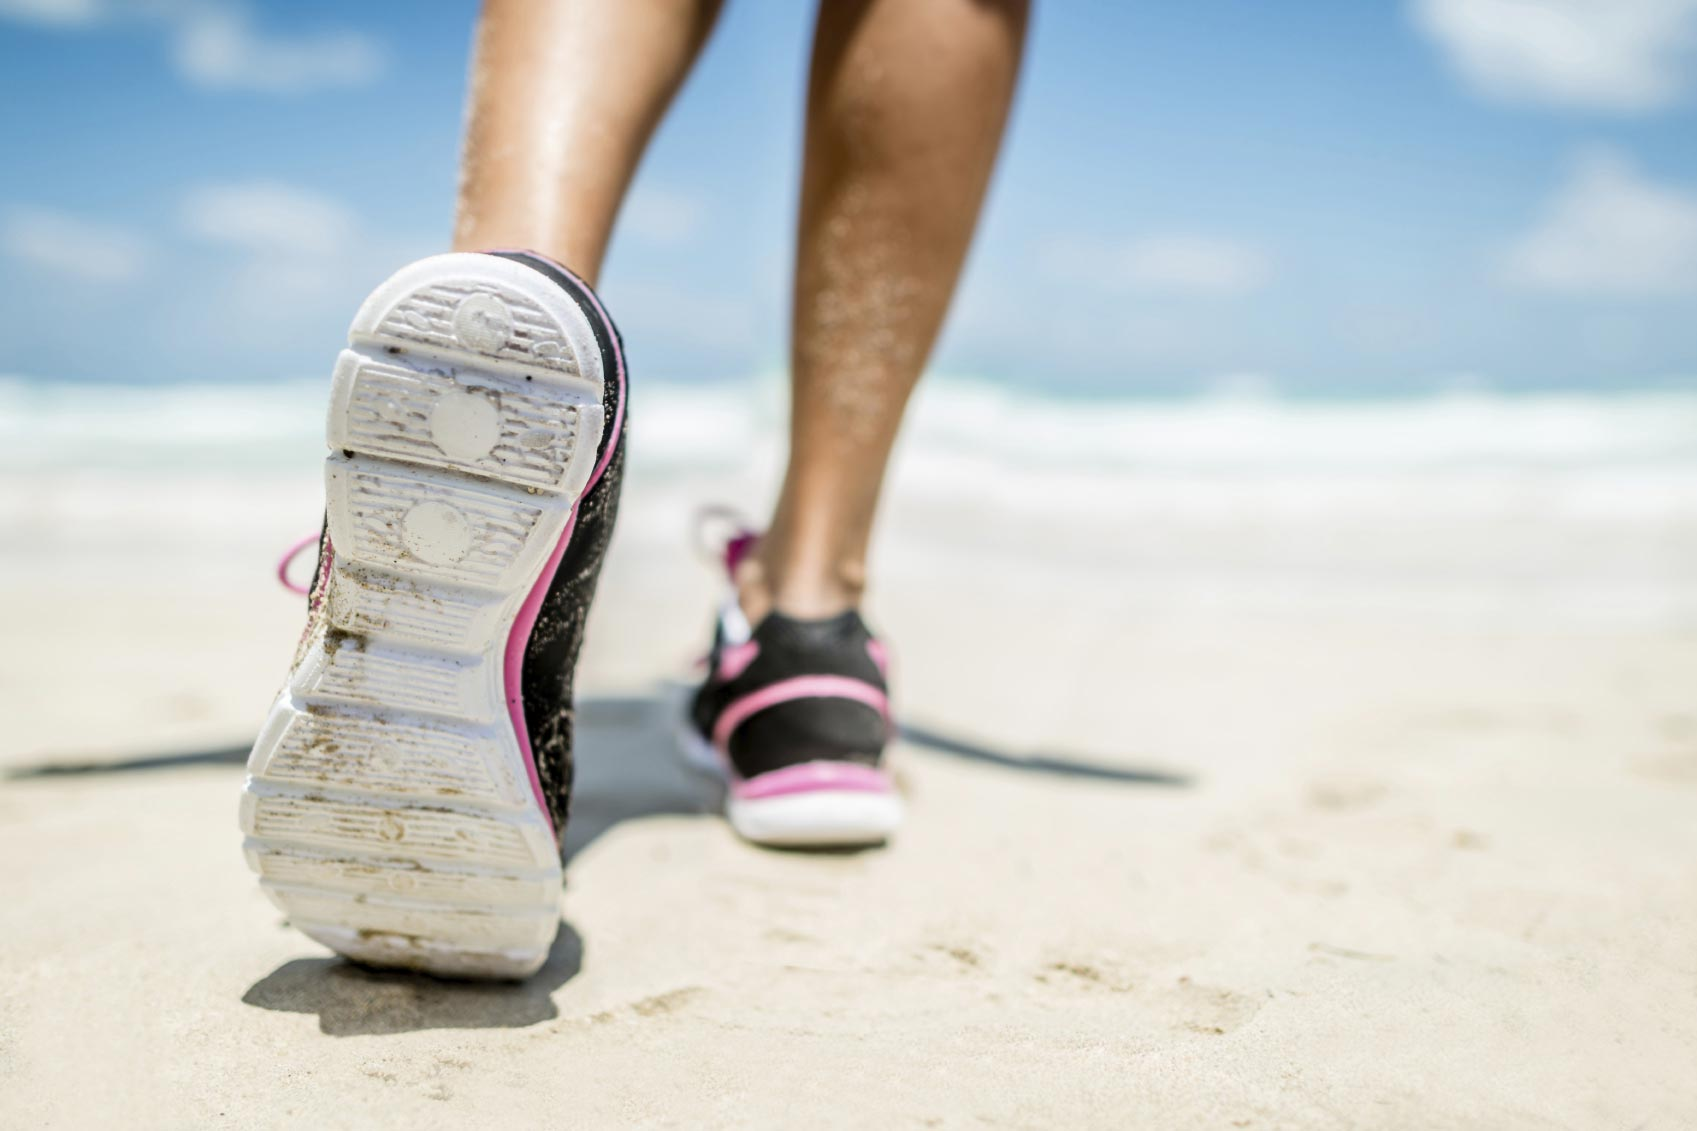 Faire un footing sur la plage